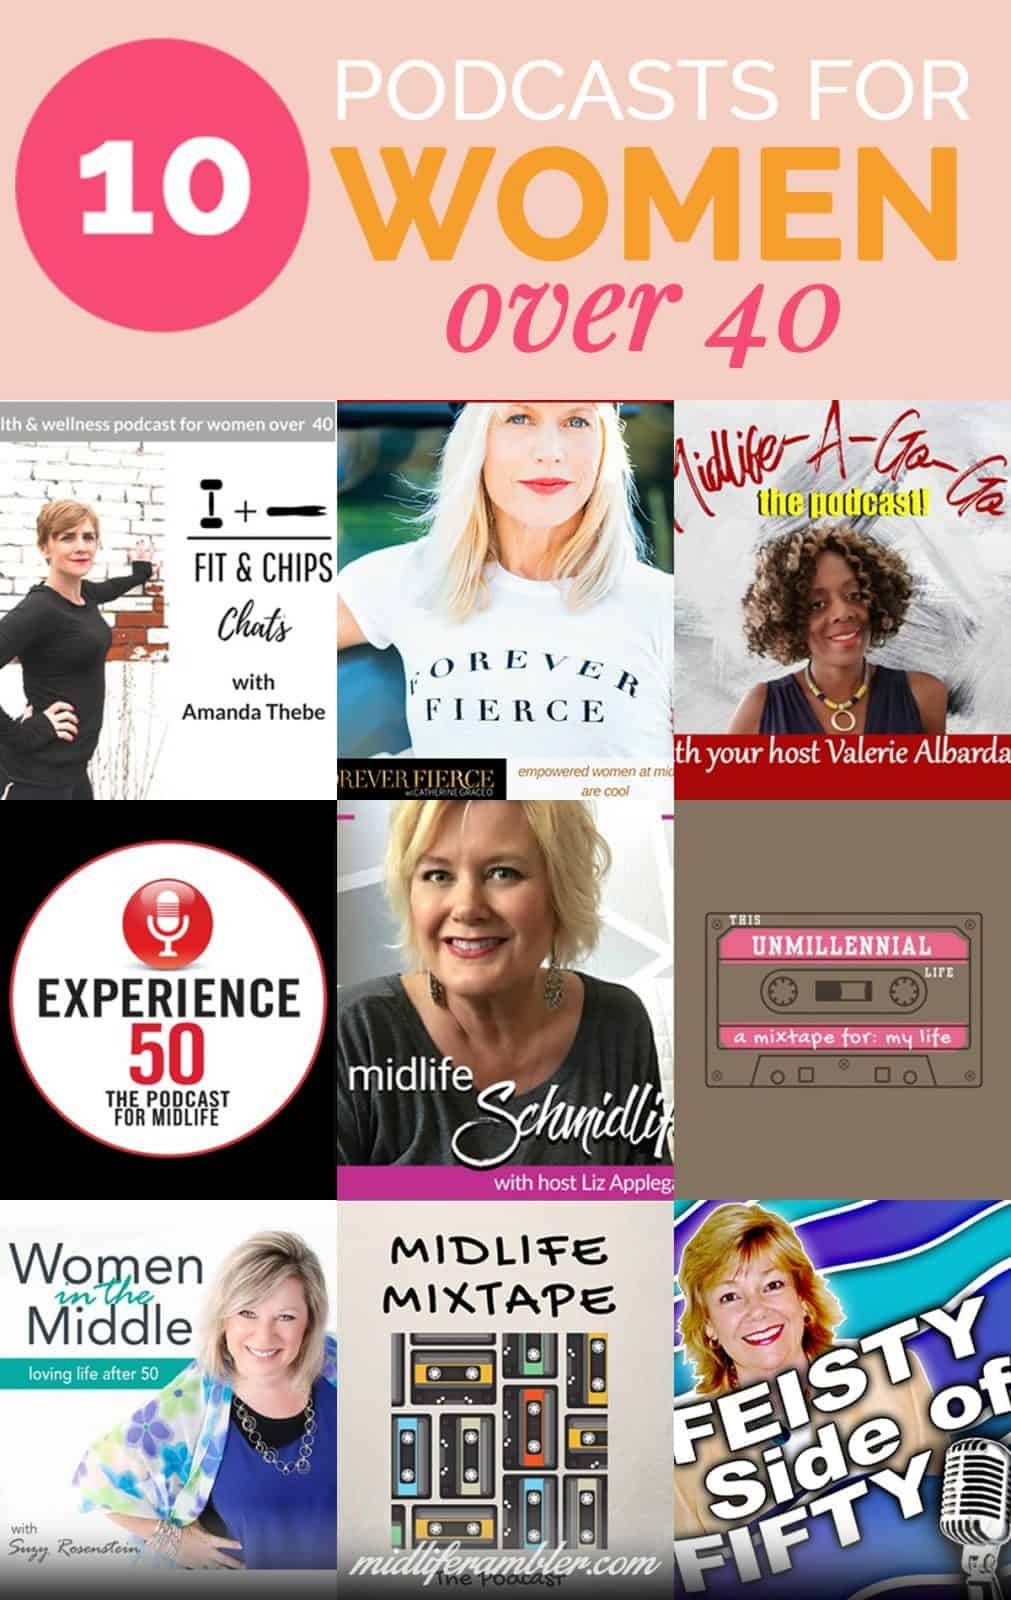 10 Podcasts That are Perfect for Midlife Women 4